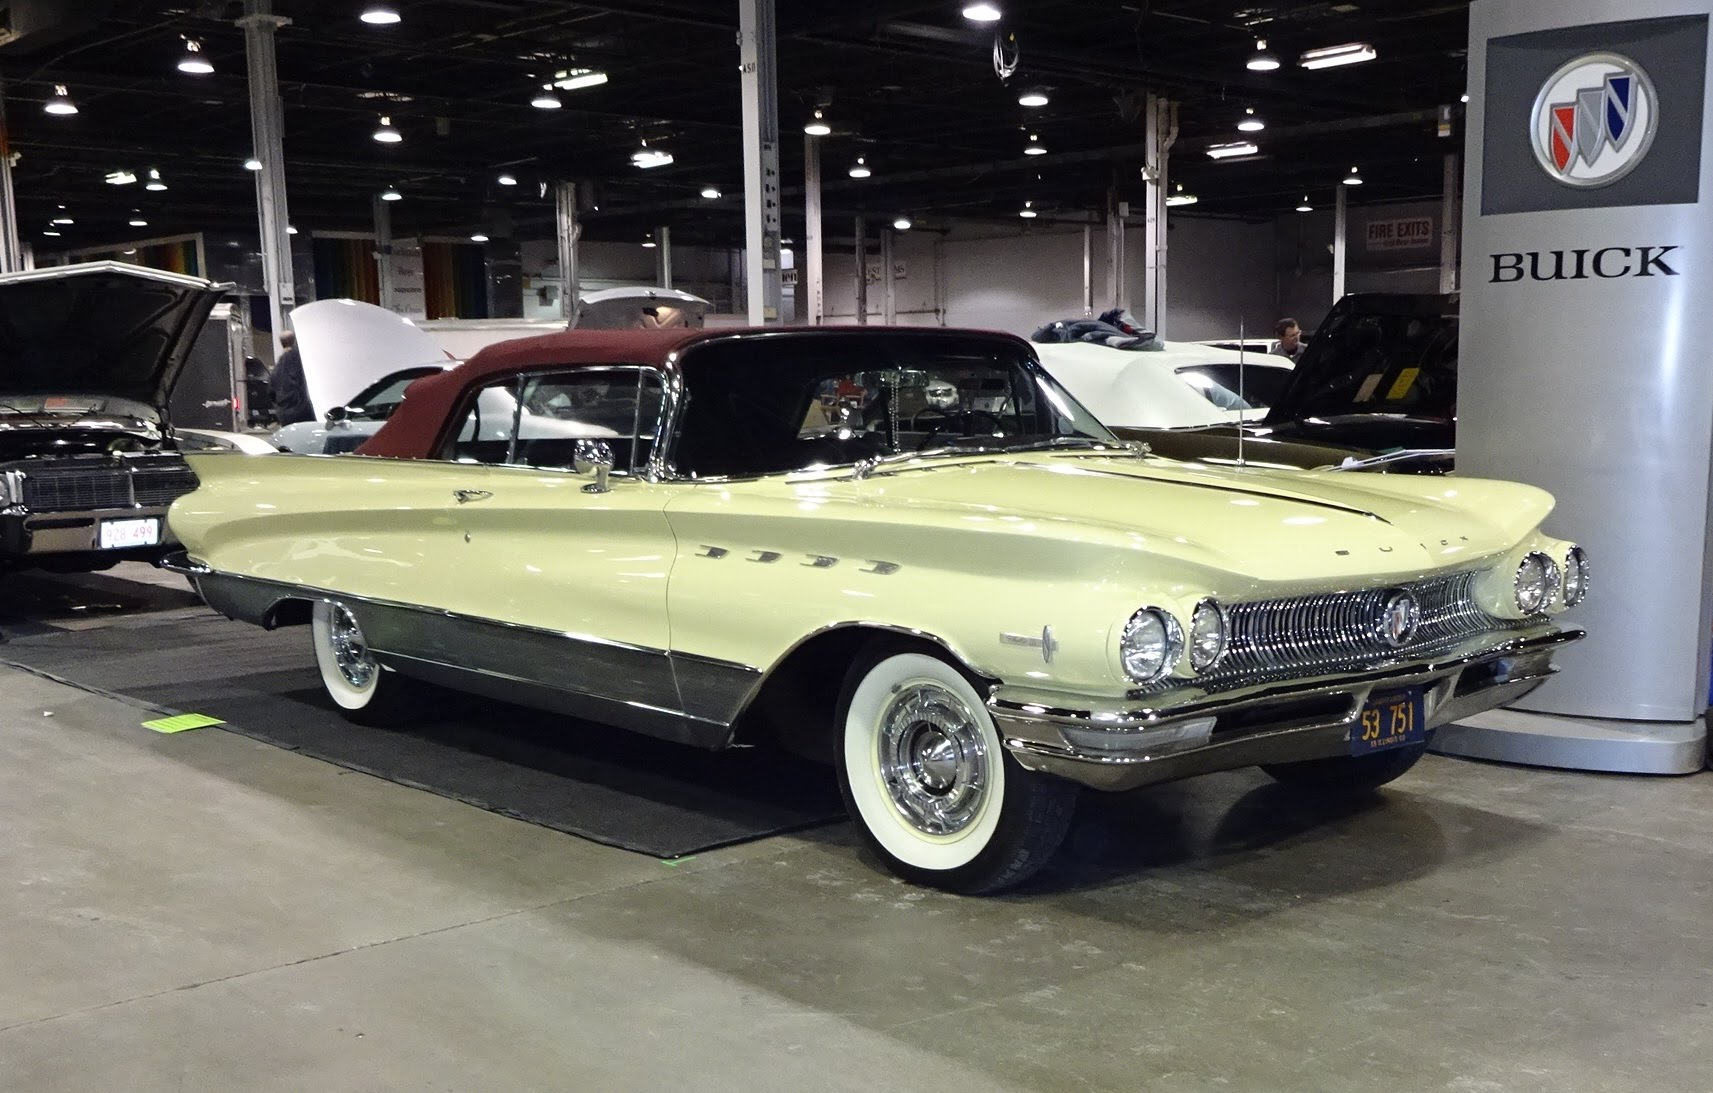 1960 Buick Electra Backgrounds, Compatible - PC, Mobile, Gadgets  1713x1093 px